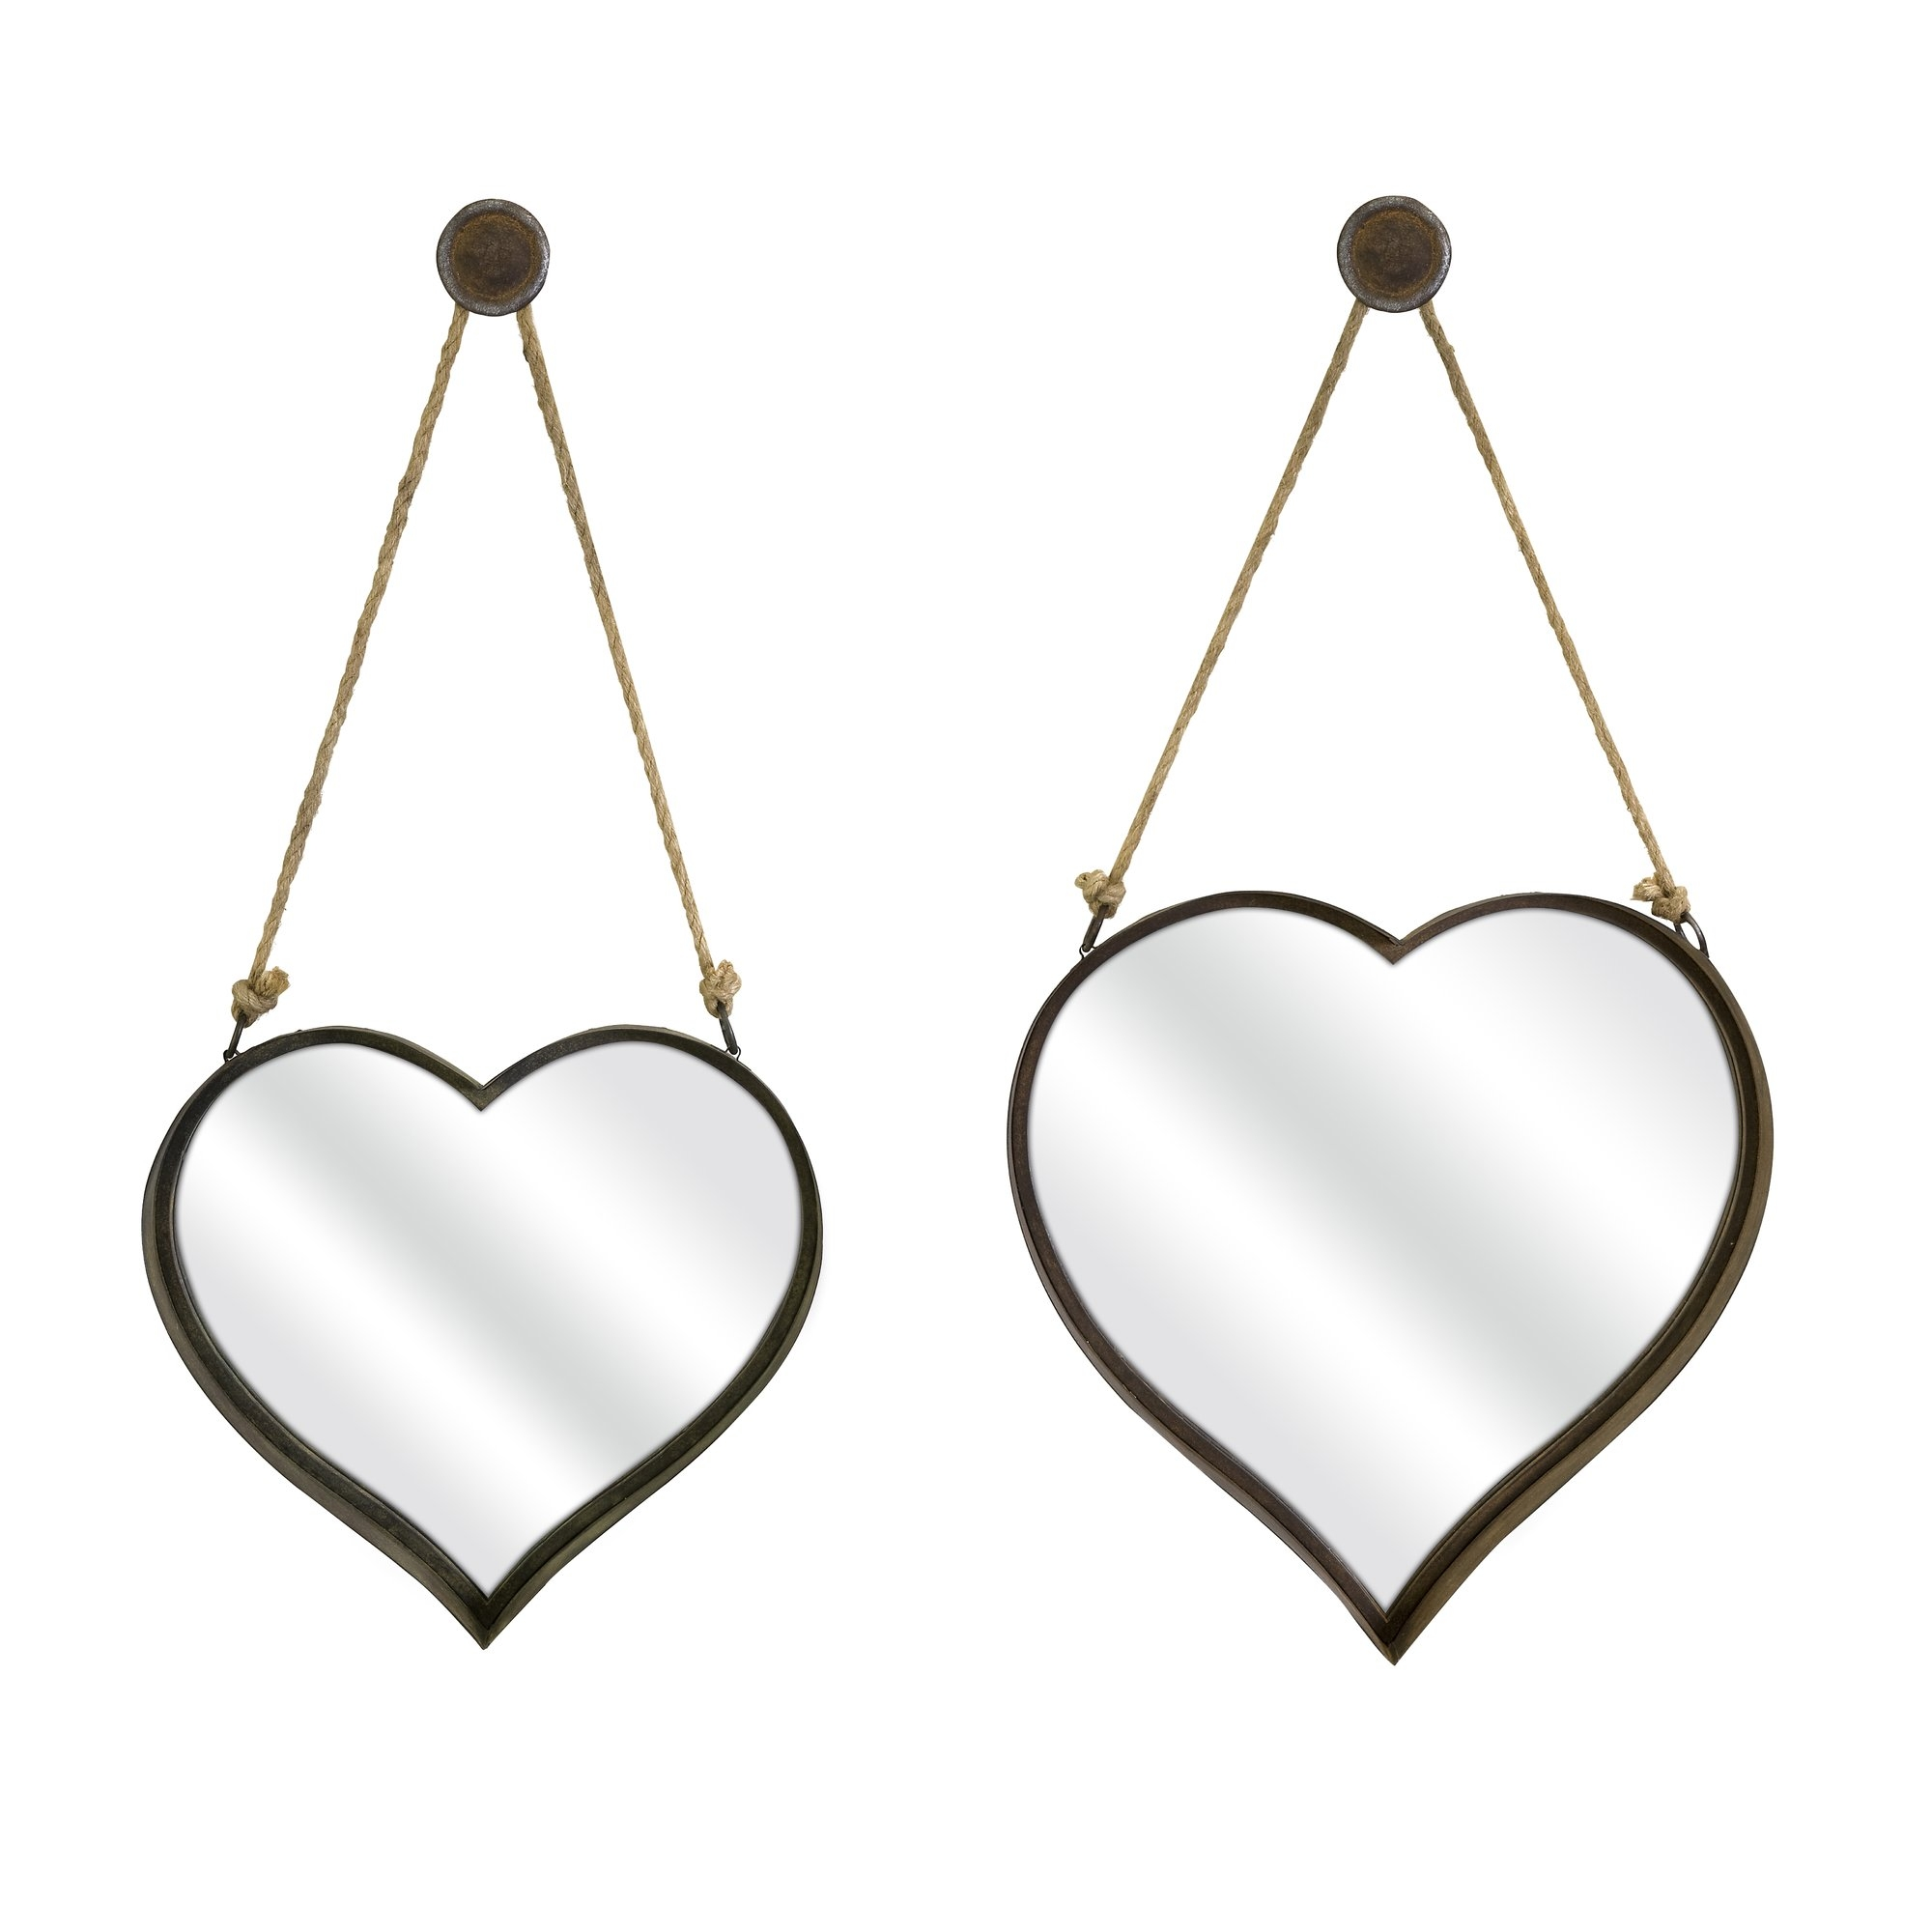 Imax 2 Piece Heart Shape Wall Mirror Reviews Wayfair Regarding Heart Wall Mirror (Image 8 of 15)